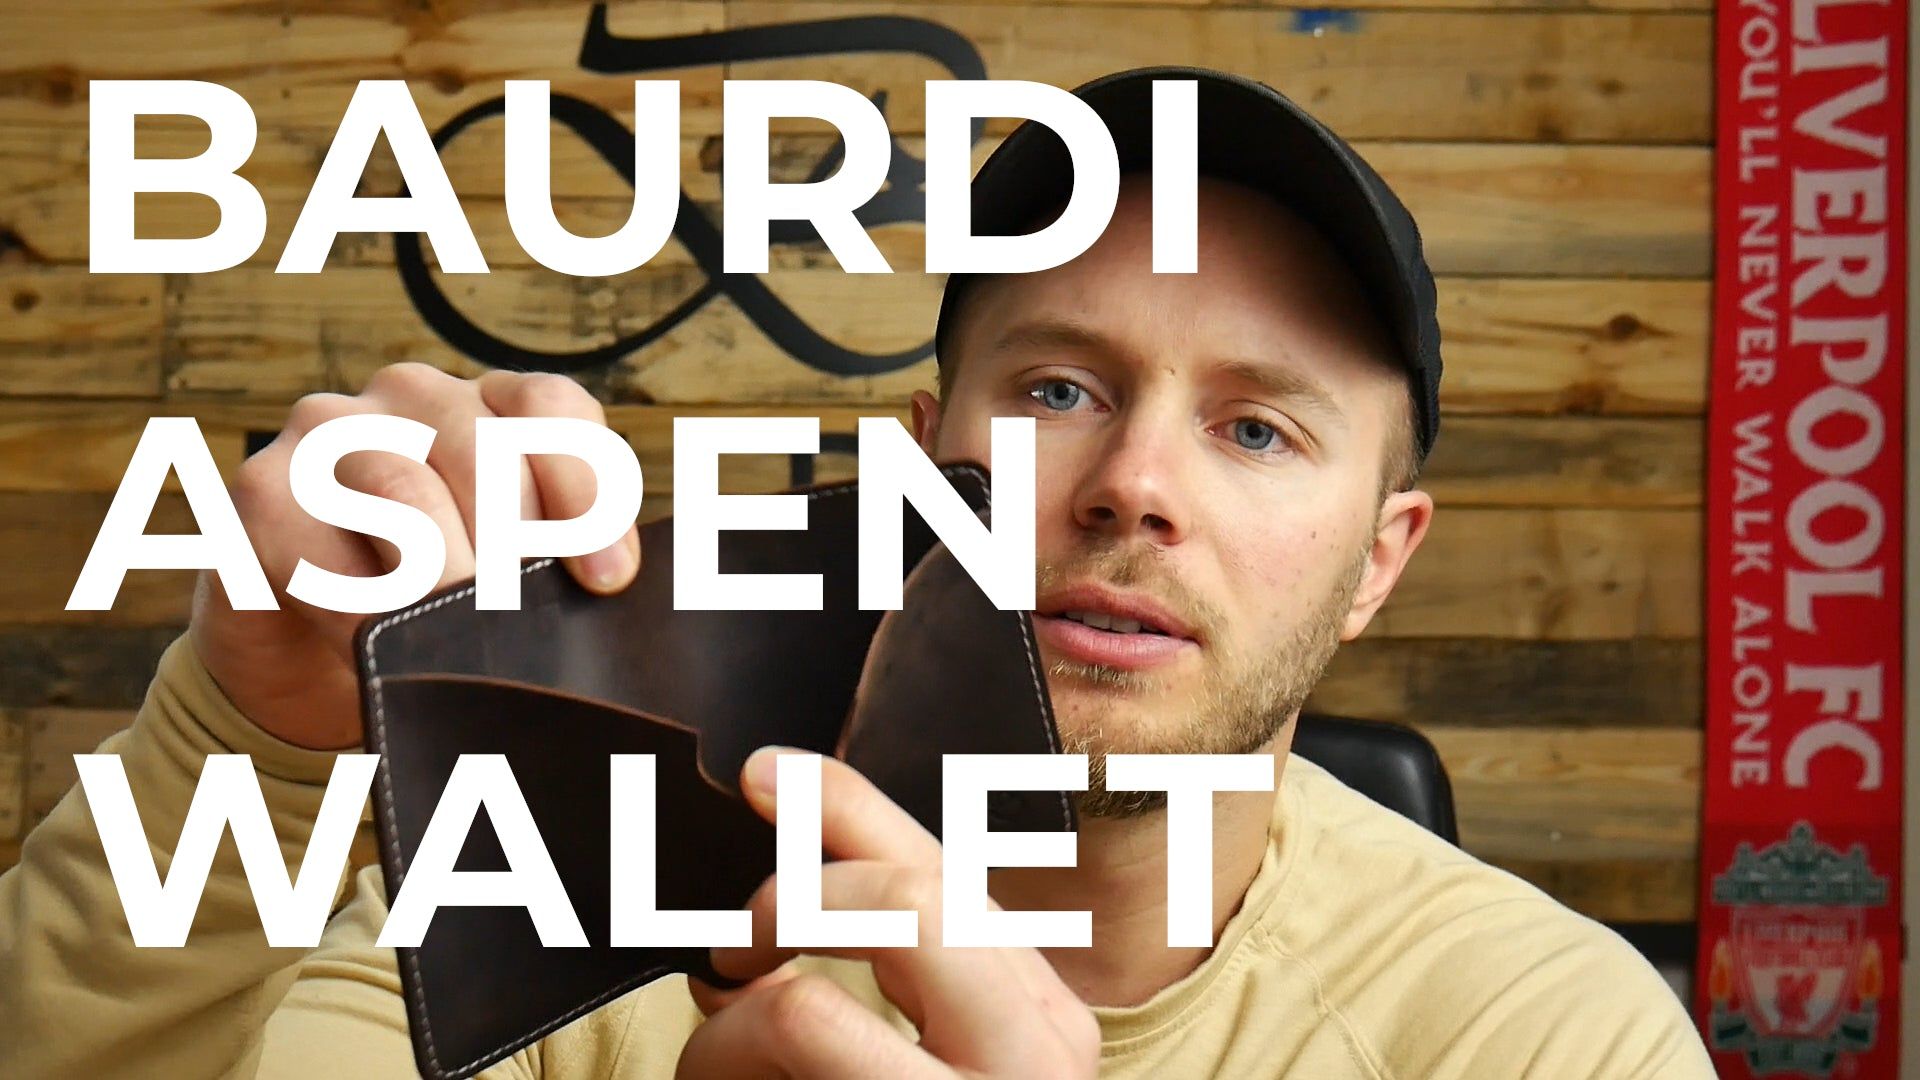 The Baurdi Aspen Wallet - Details and Design